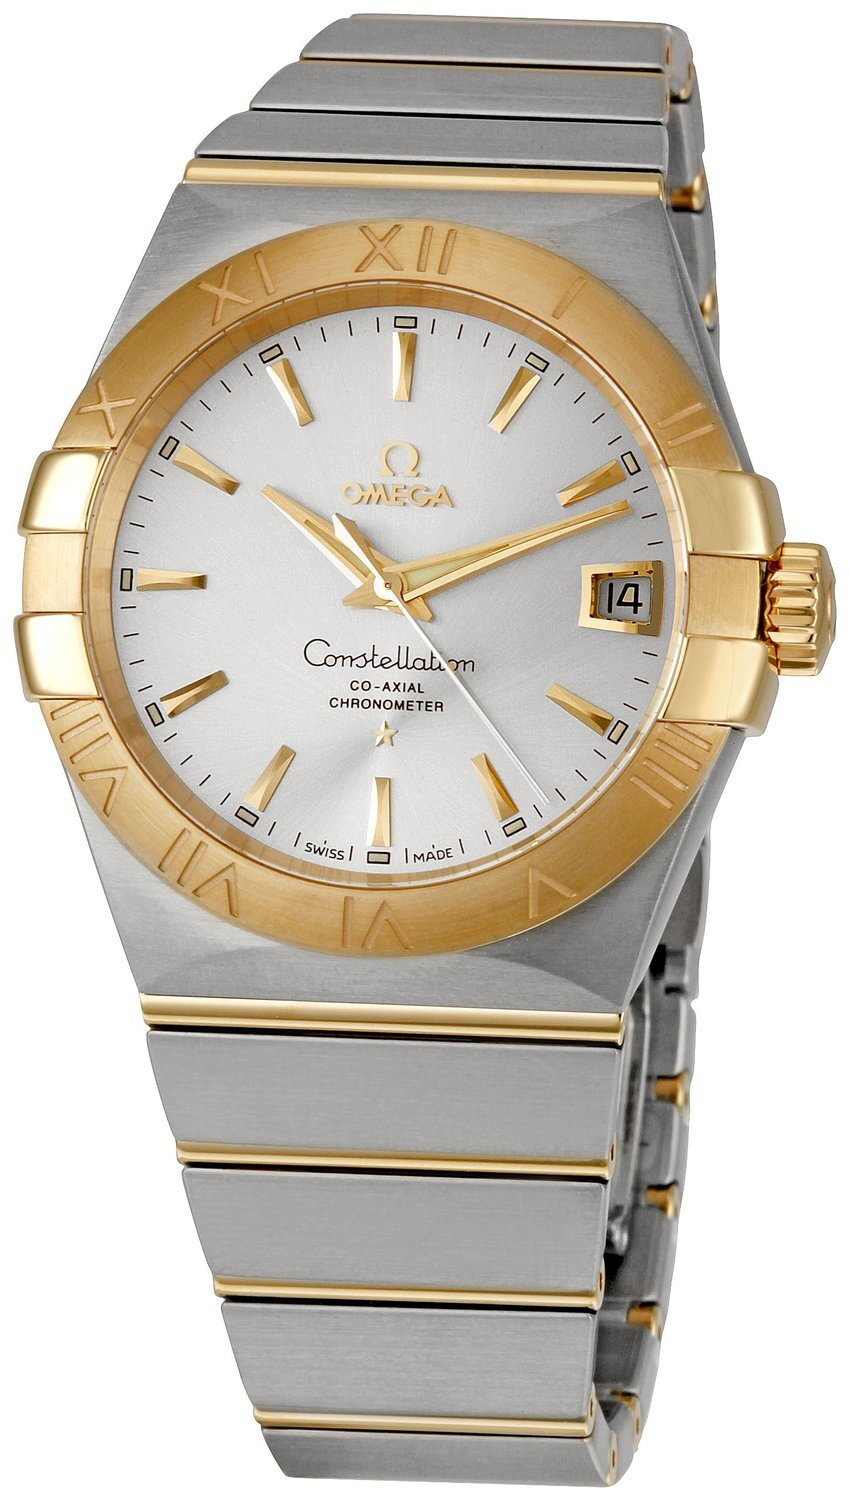 Omega Constellation Co-Axial 38mm Herreklokke 123.20.38.21.02.002 - Omega